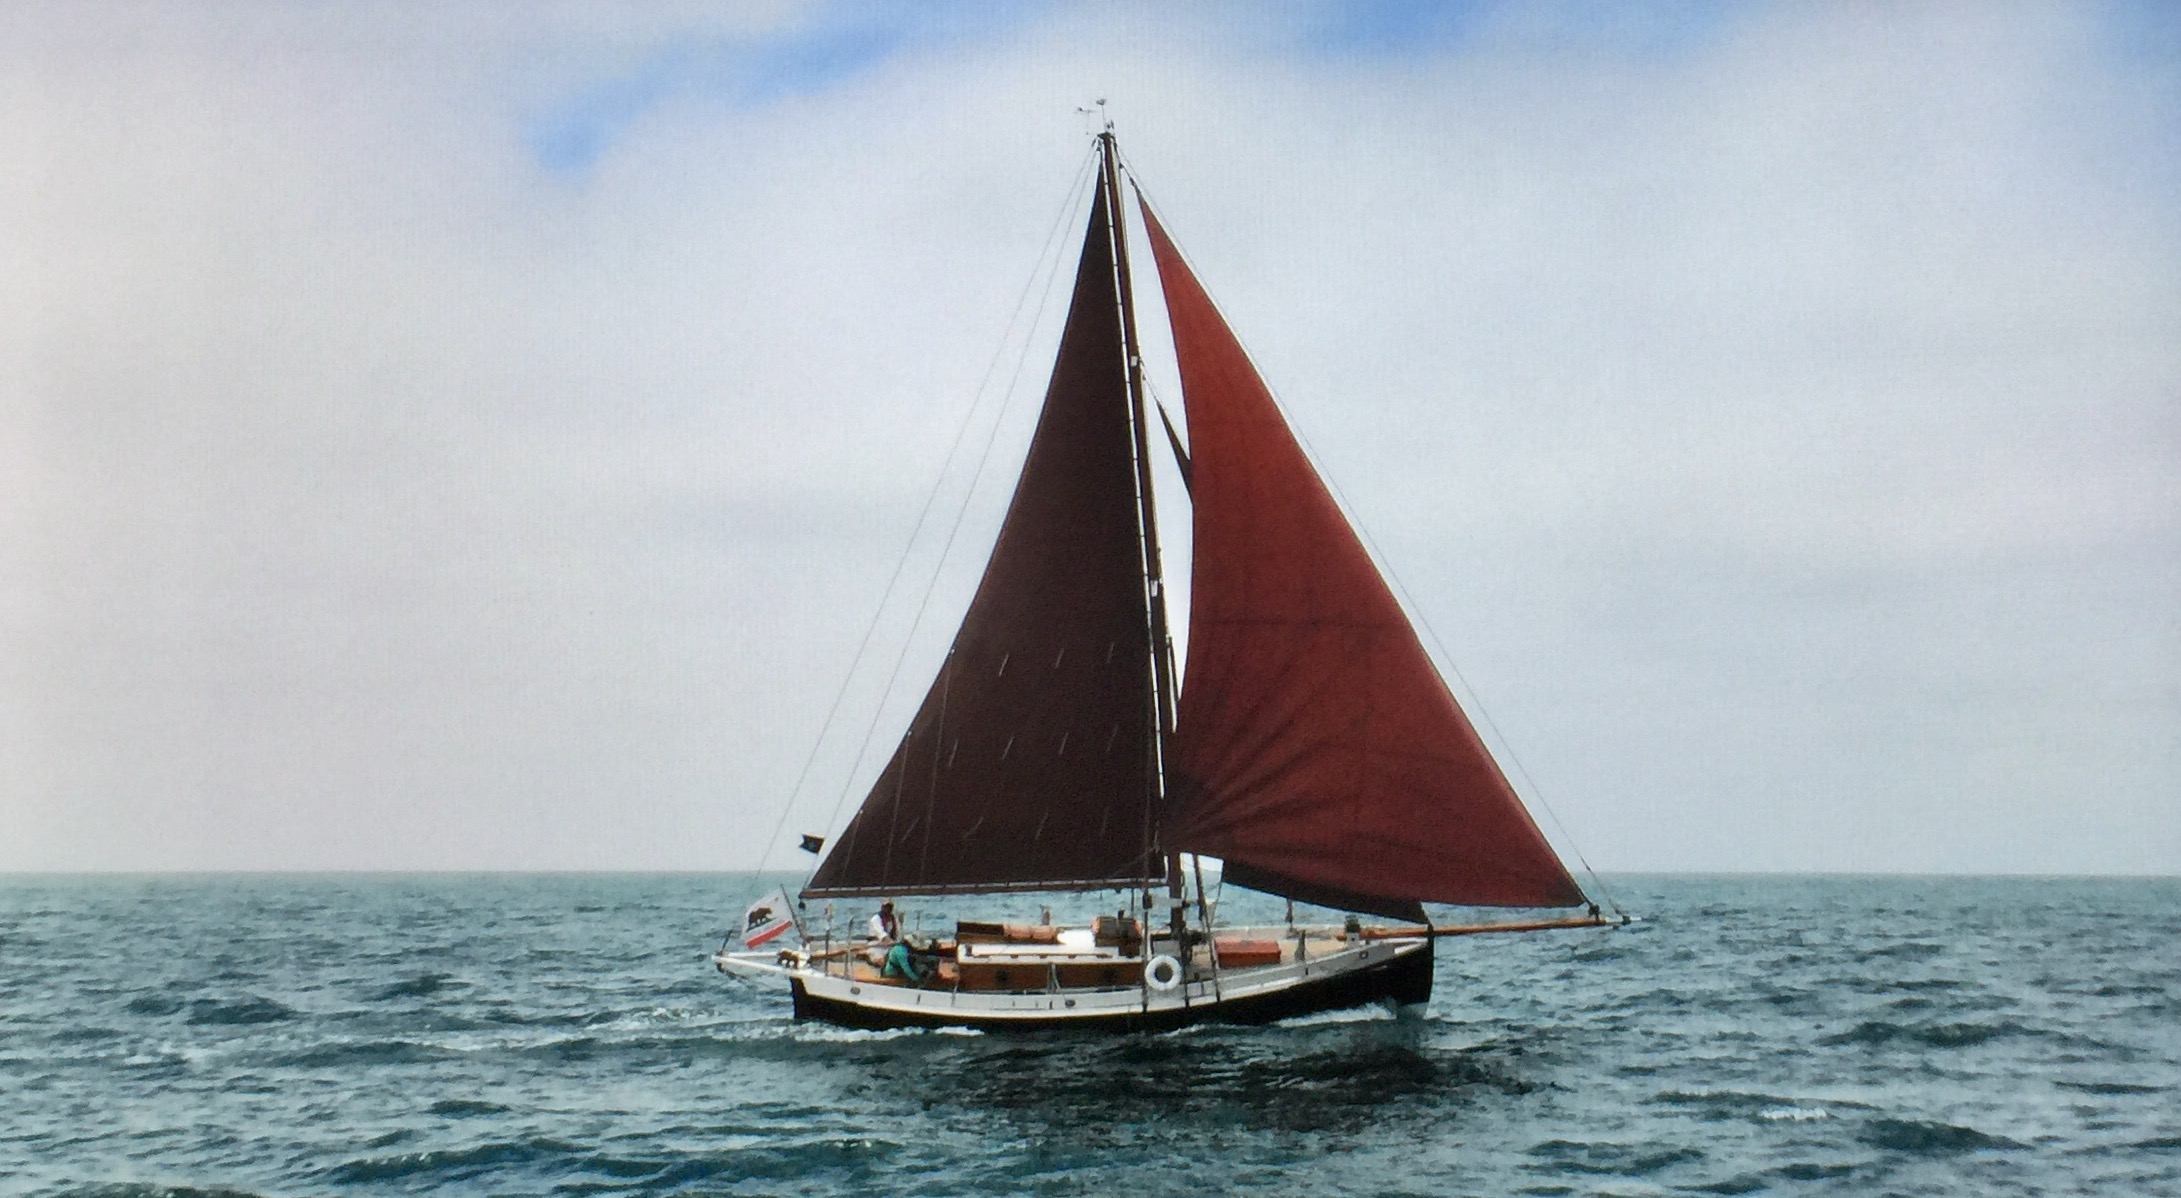 Sailing boat with air head compost toilet installed